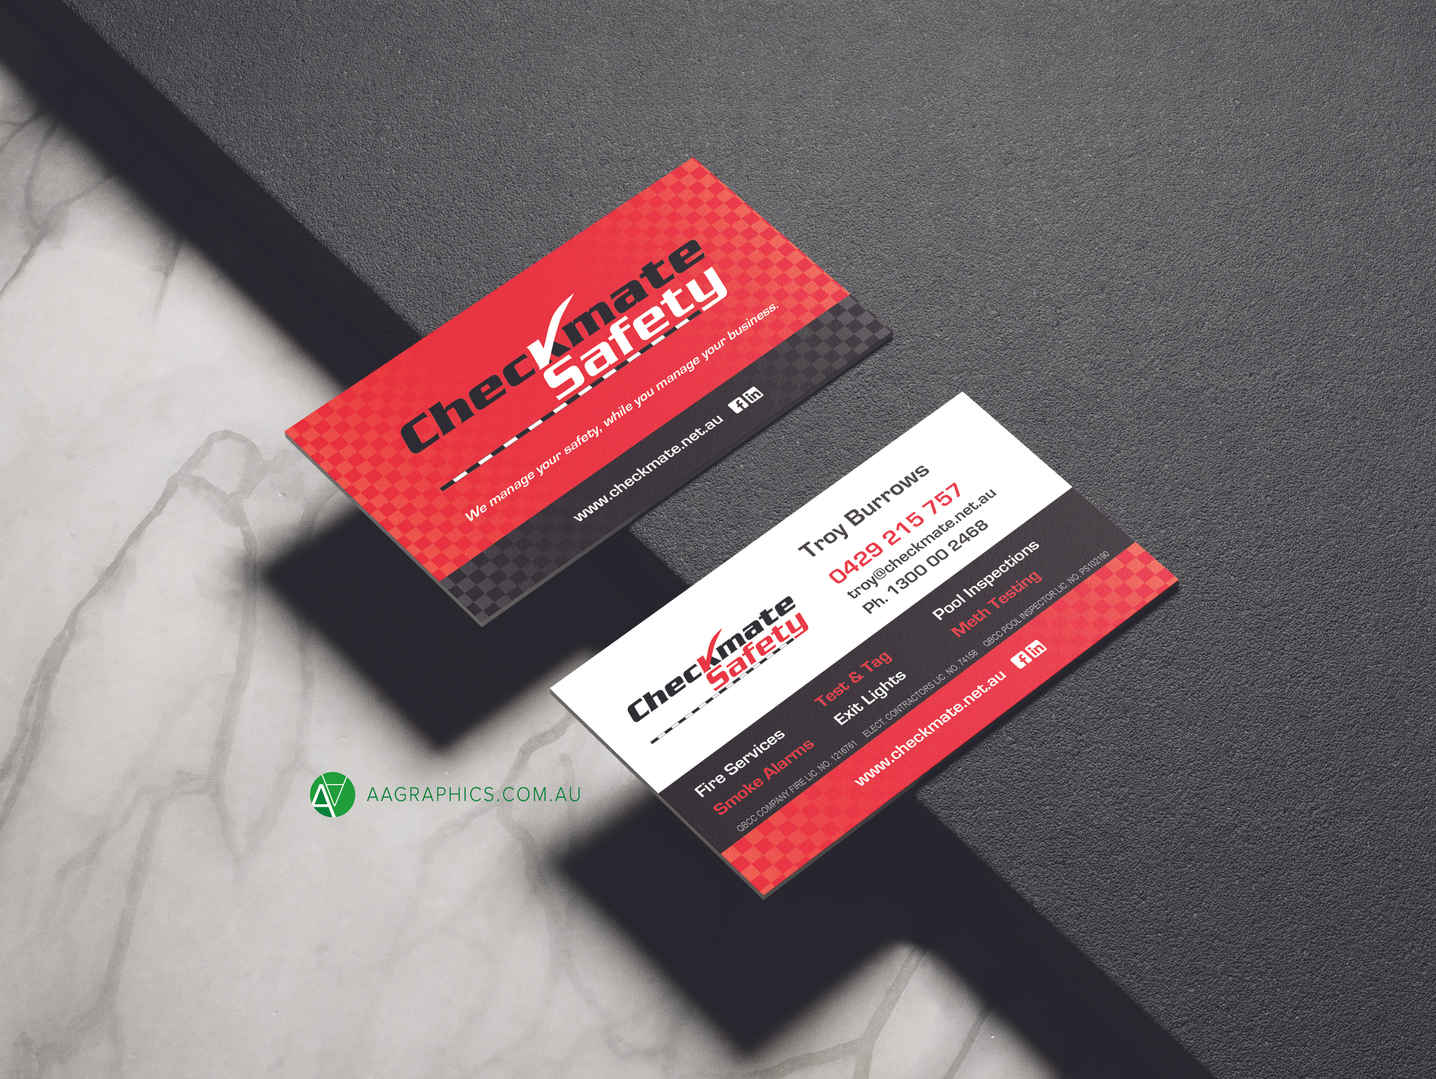 Checkmate Safety_Business Card_AA Graphi